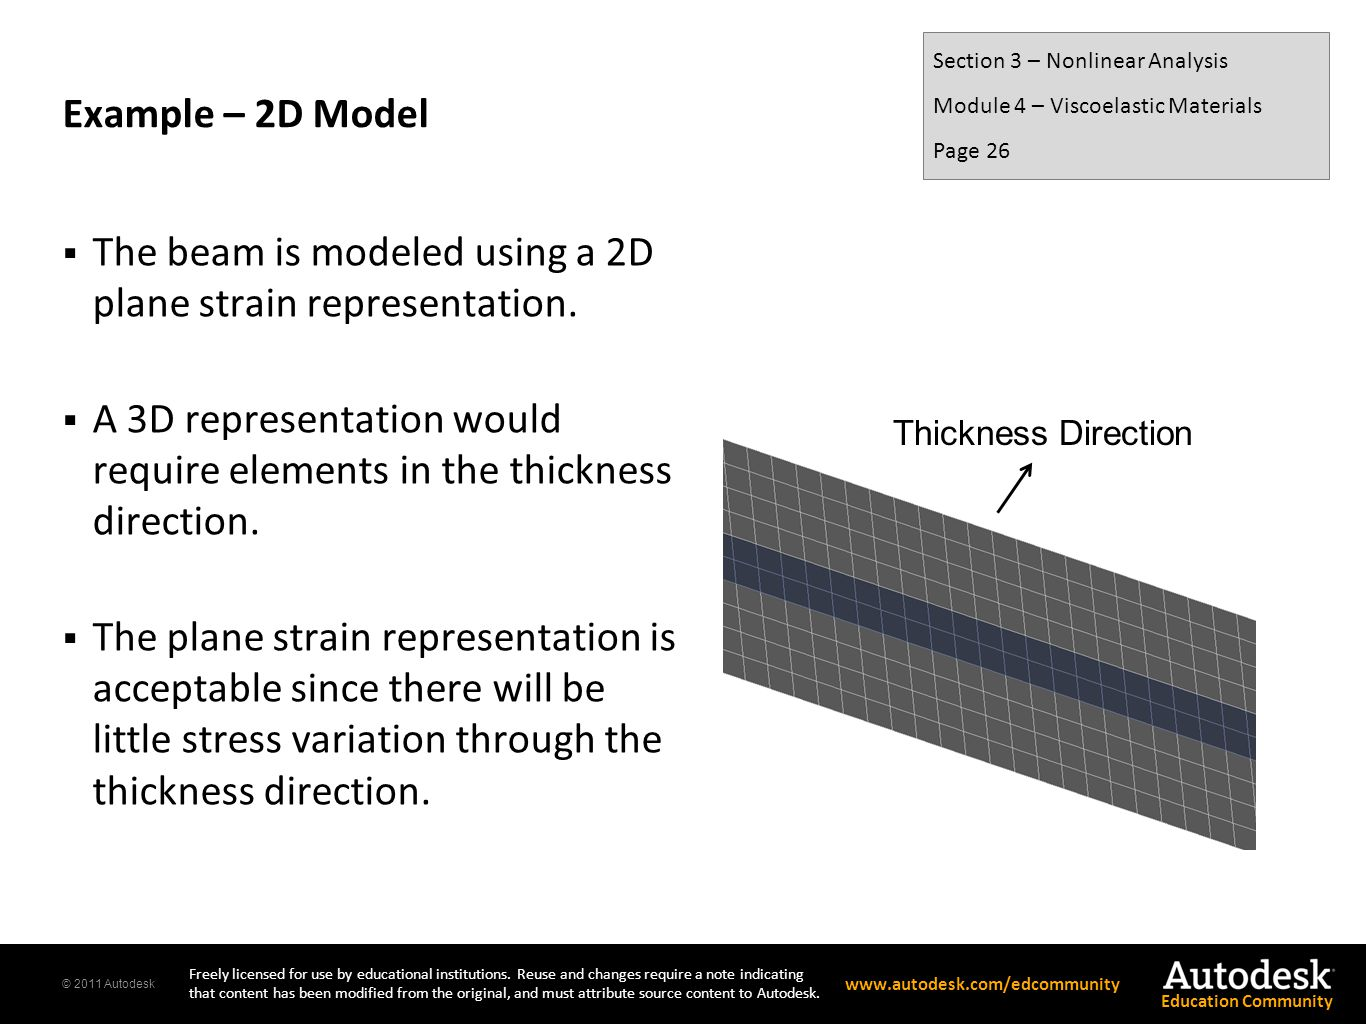 The beam is modeled using a 2D plane strain representation.